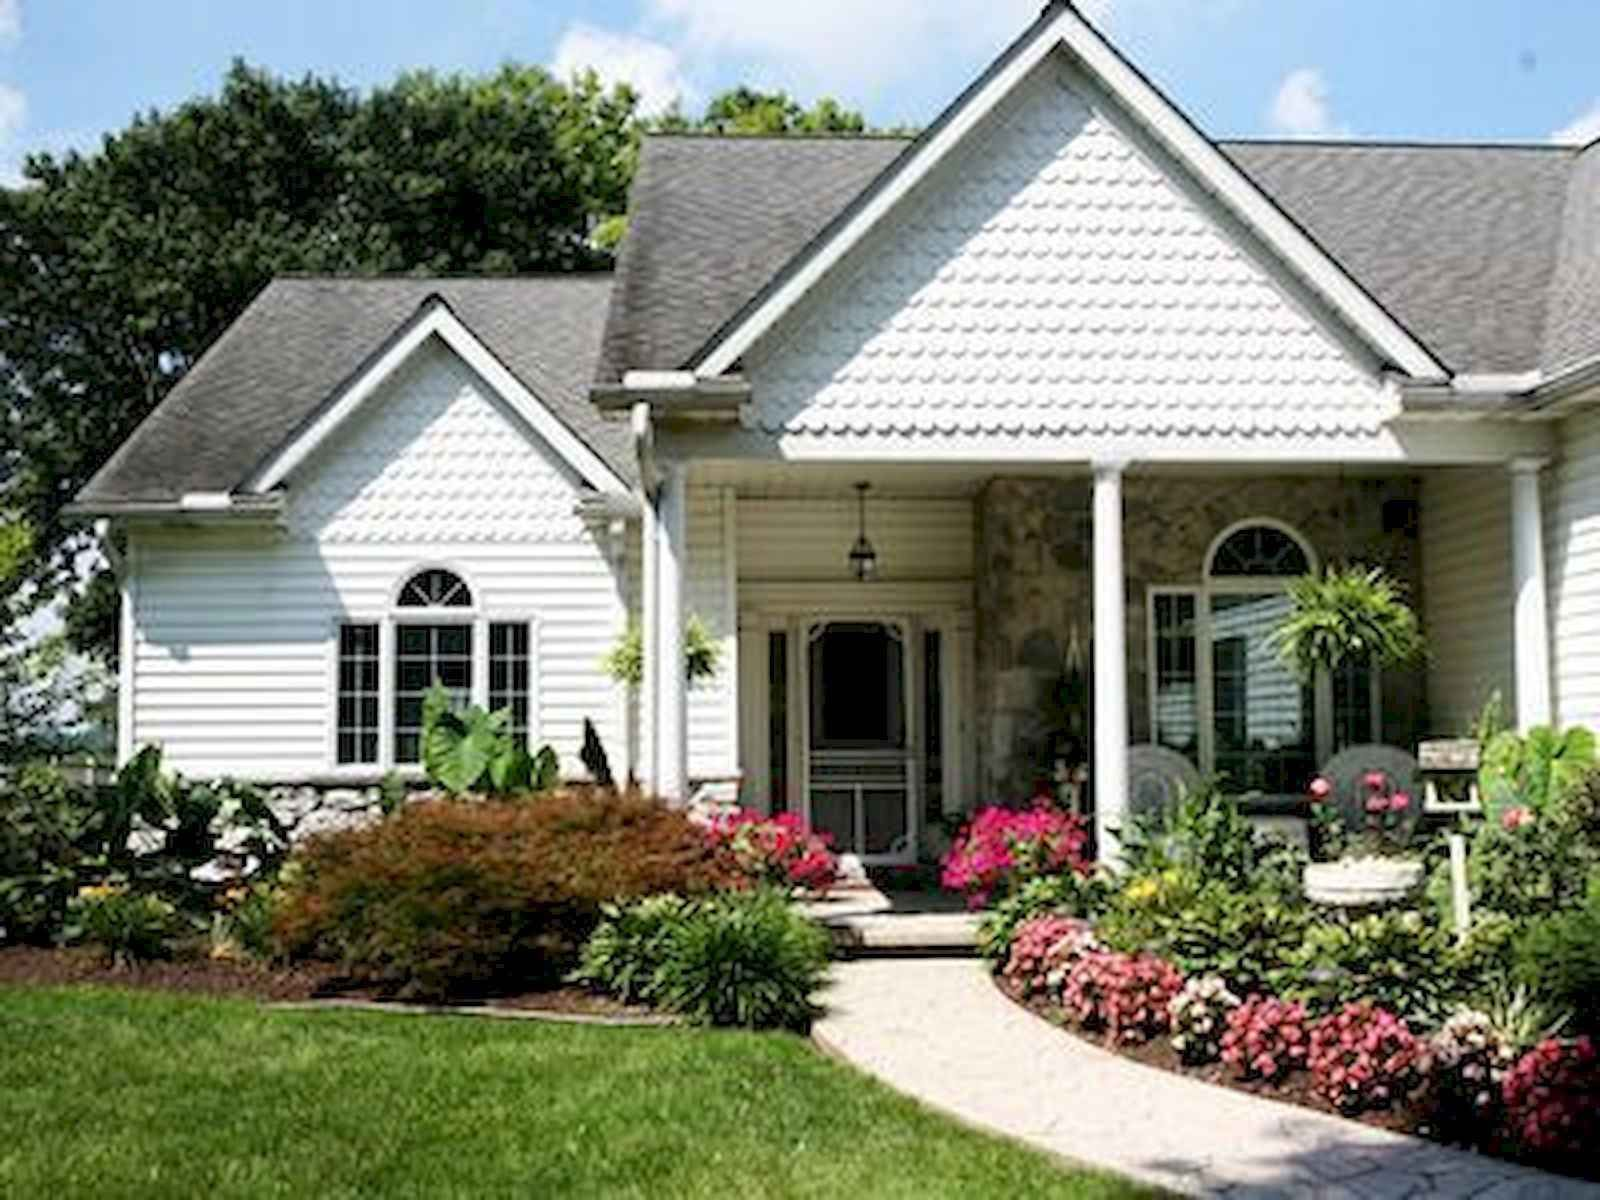 40 Cool Front Yard Garden Landscaping Design Ideas And ... on Front Yard Renovation Ideas id=19551